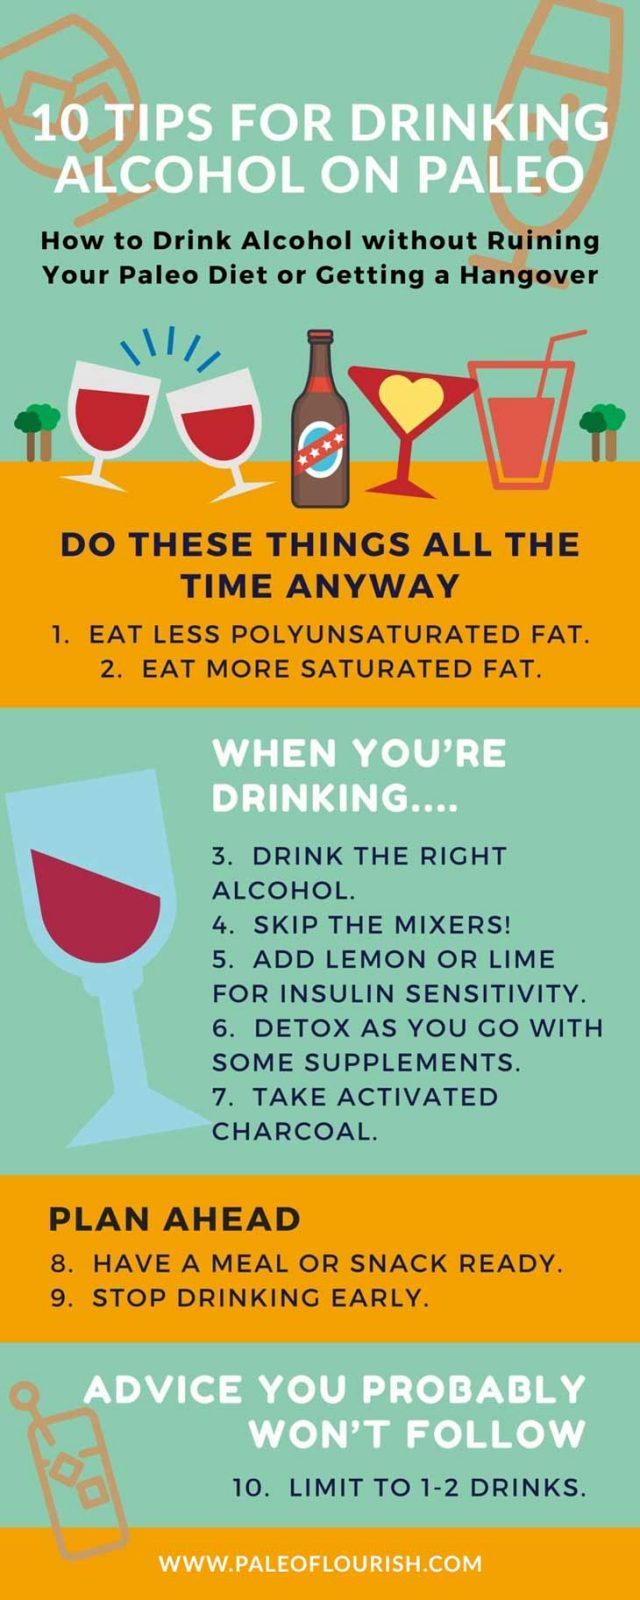 10-Tips-For-Drinking-Alcohol-On-Paleo-1